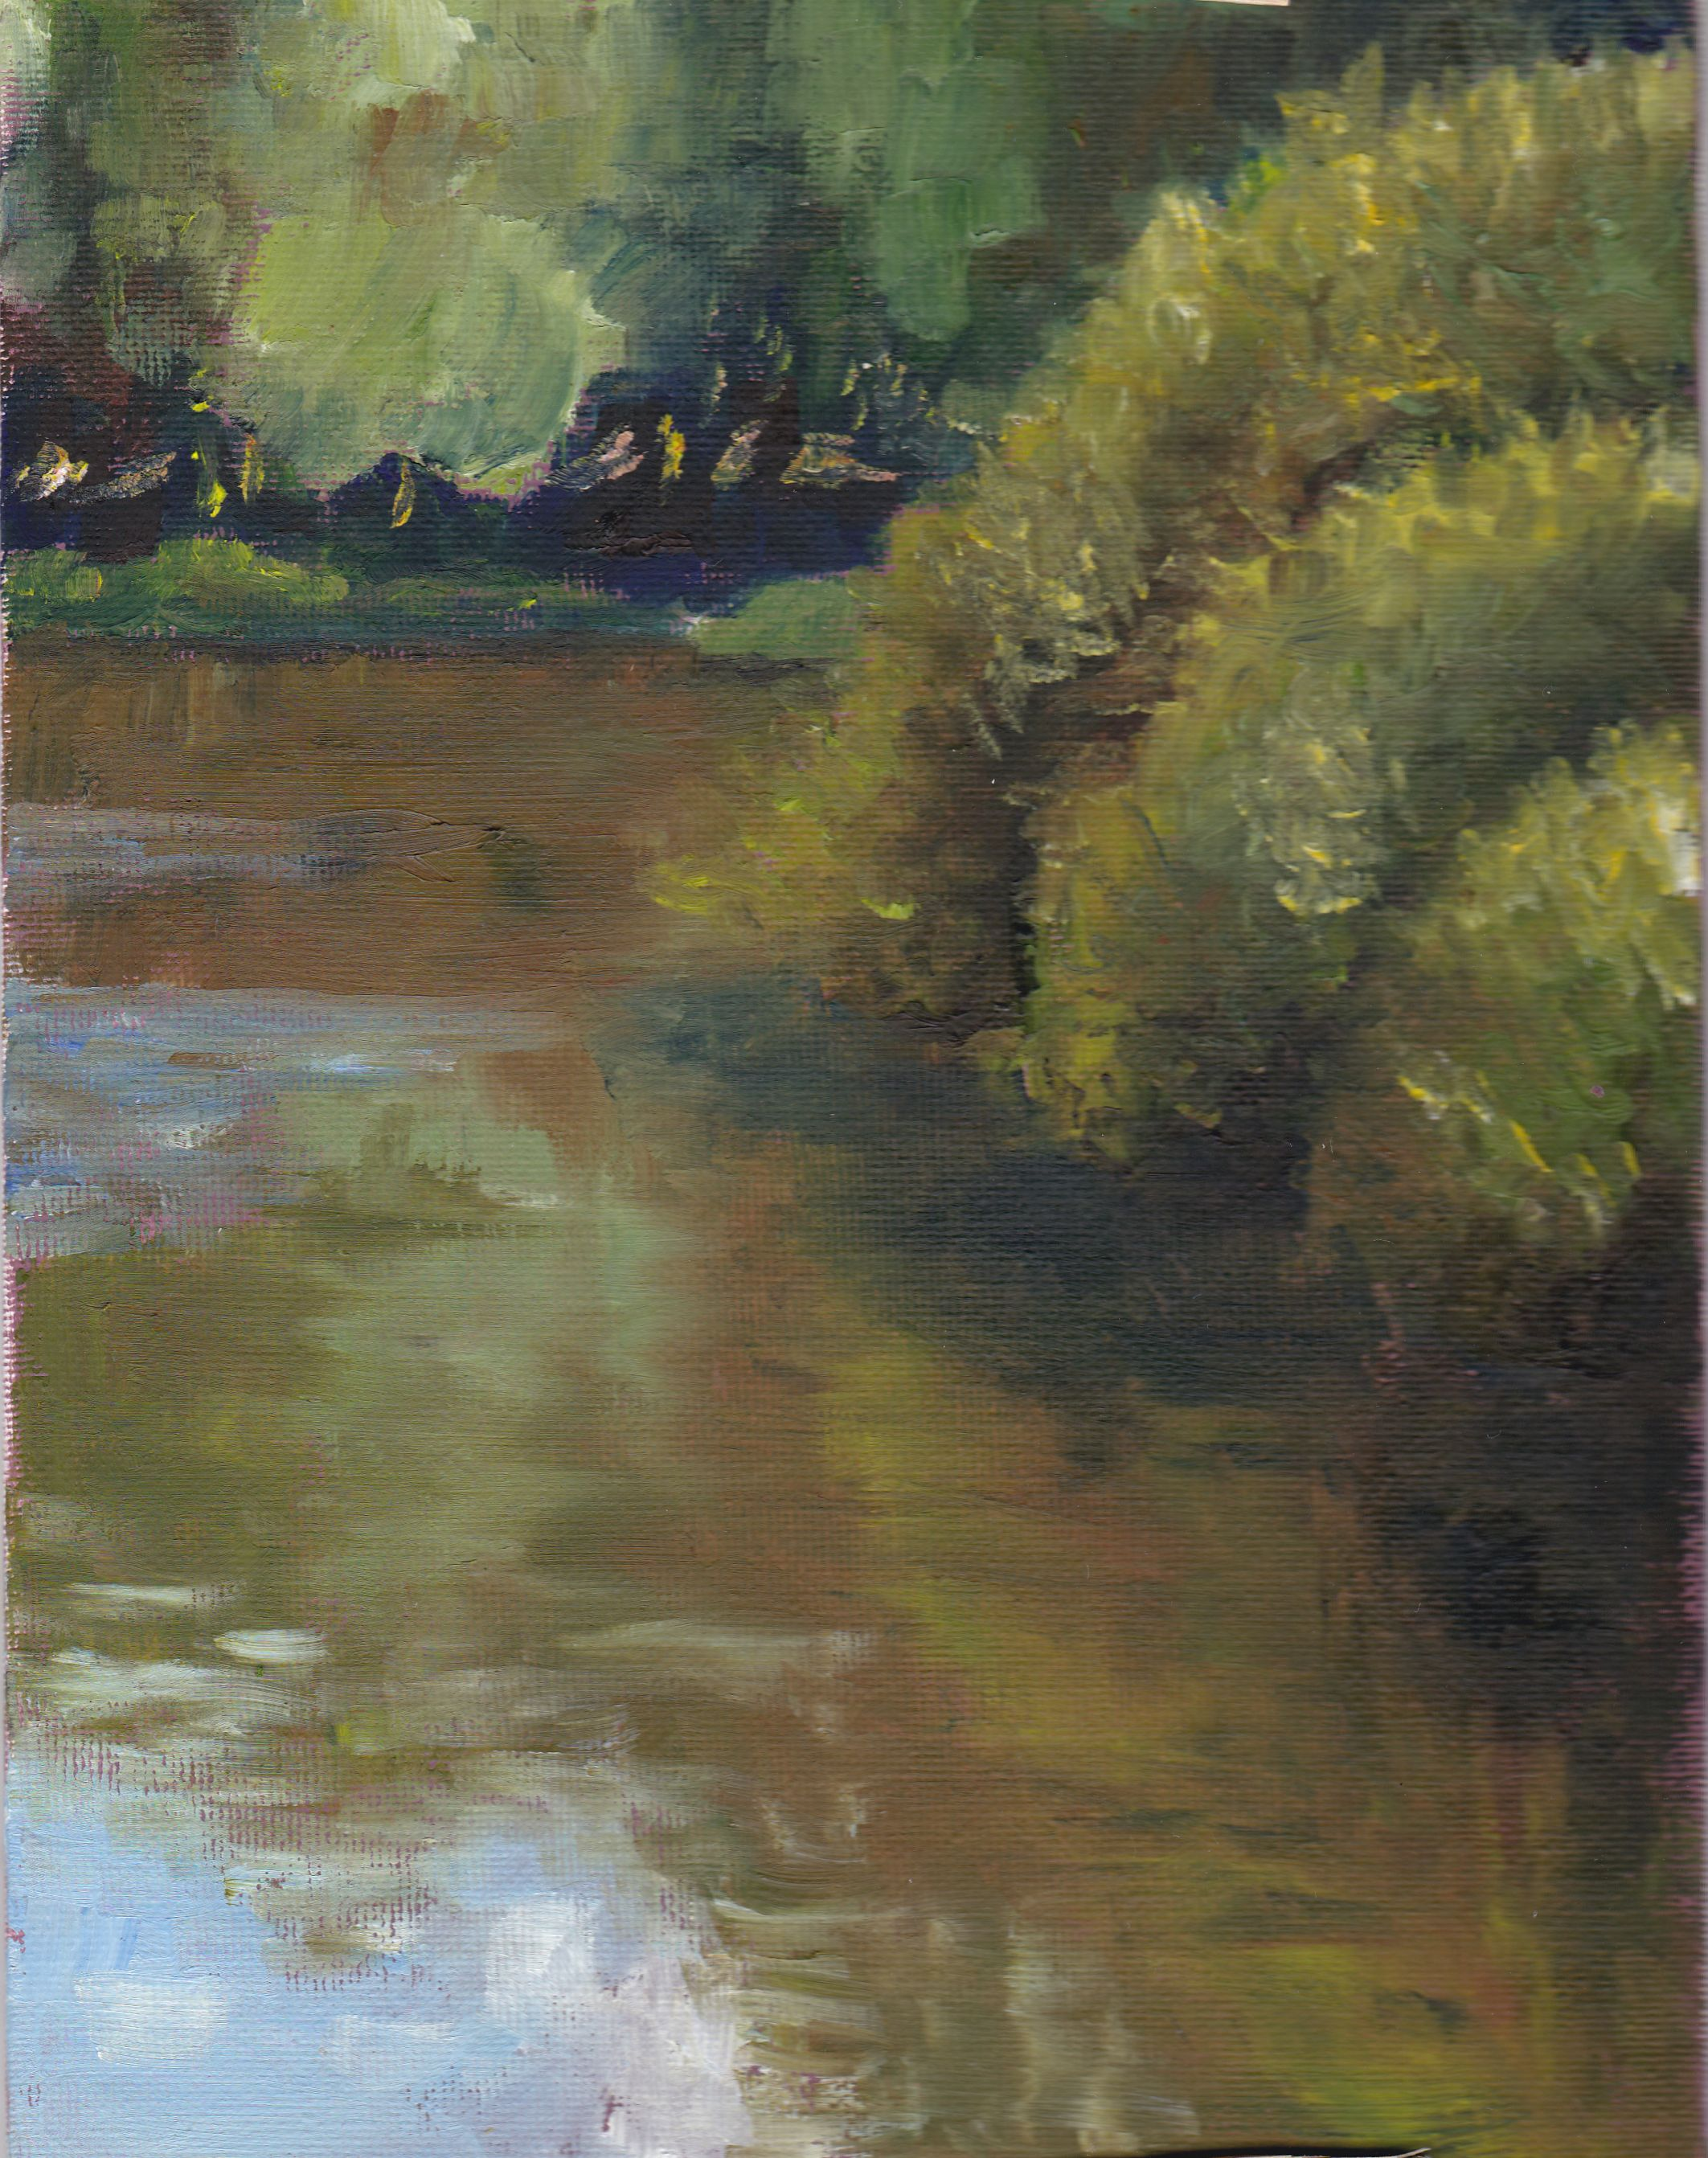 Am Fehlingsbleck. Öl auf Malpappe, 18 x 24 cm. On Fehlingsbleck lake. Oil on canvas board, 7.25'' x 9.5''.